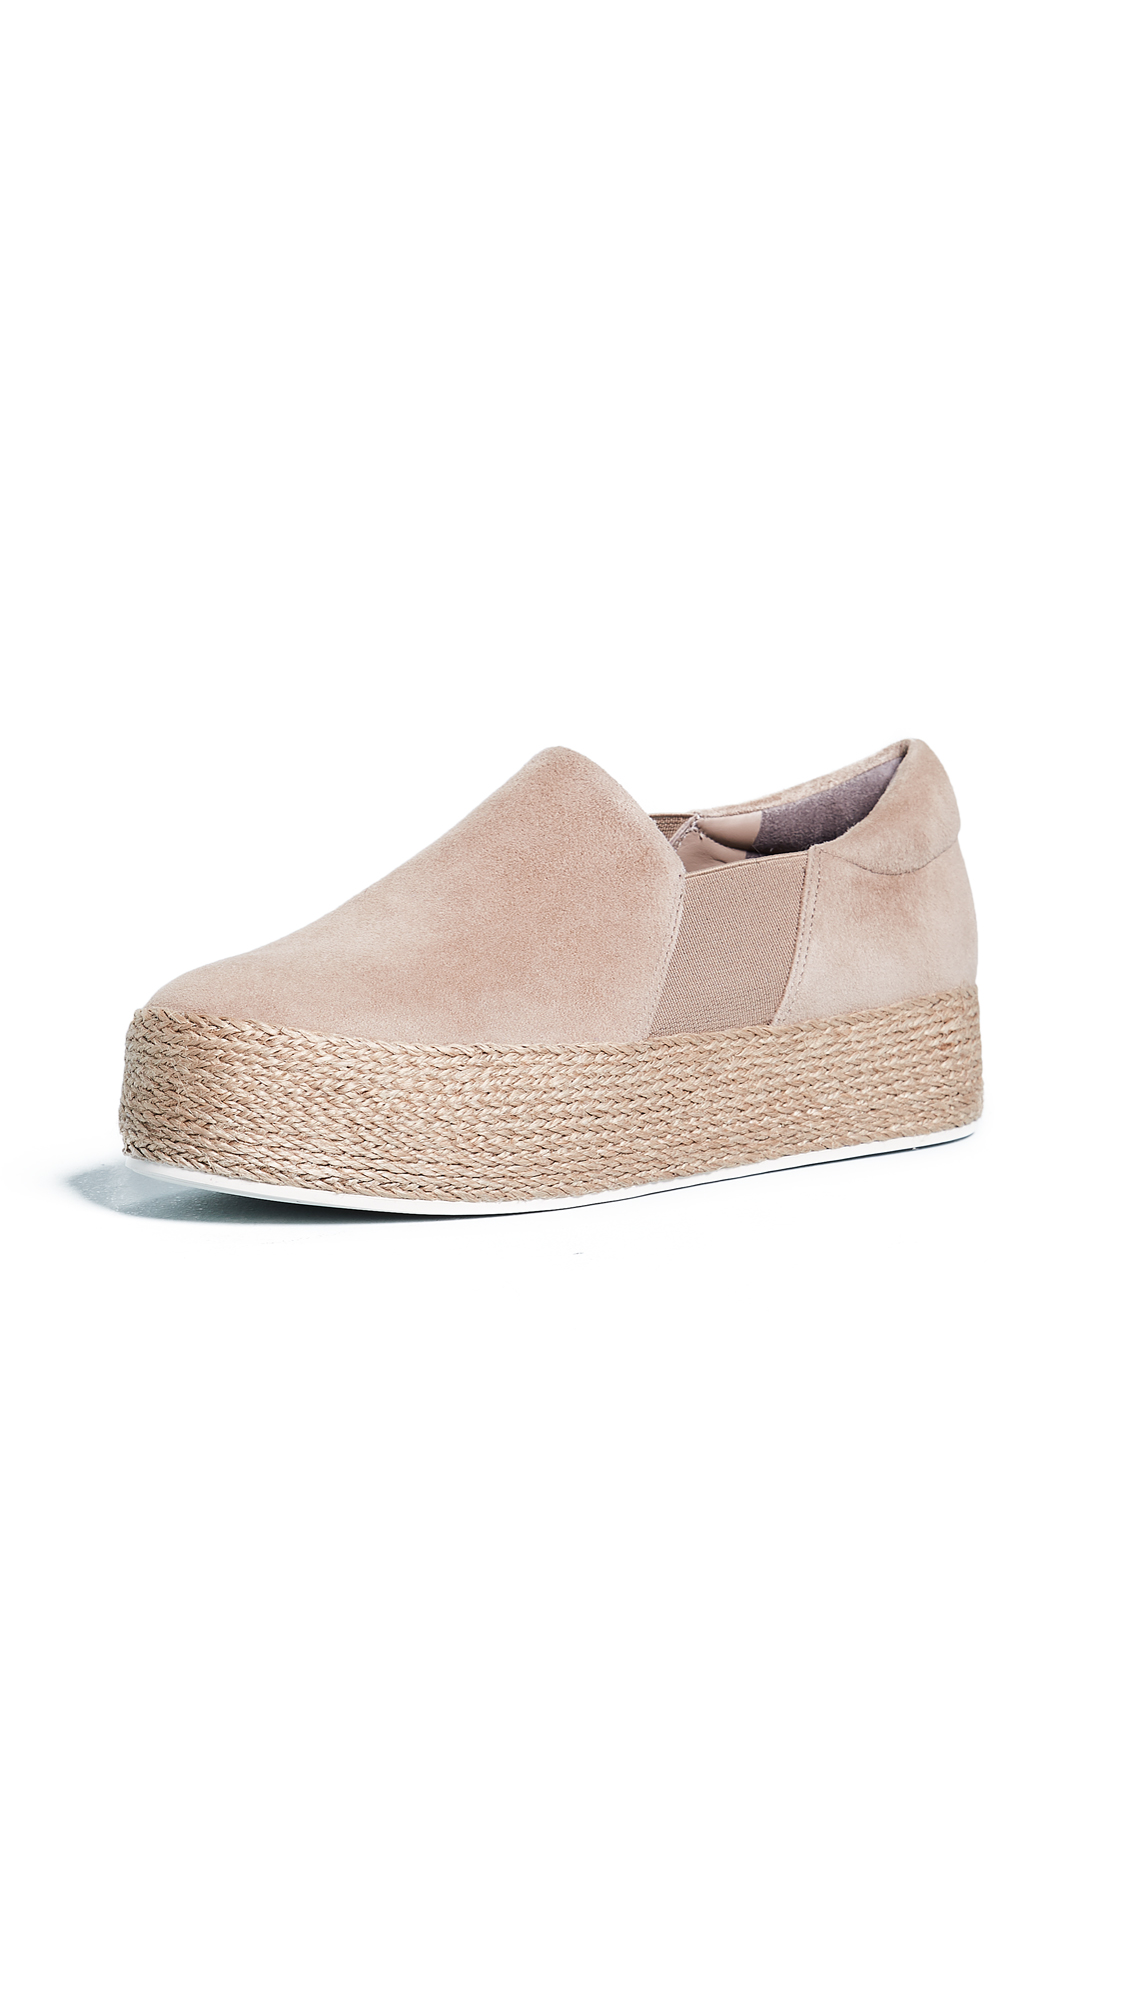 Vince Wilden Platform Slip On Sneakers - Straw